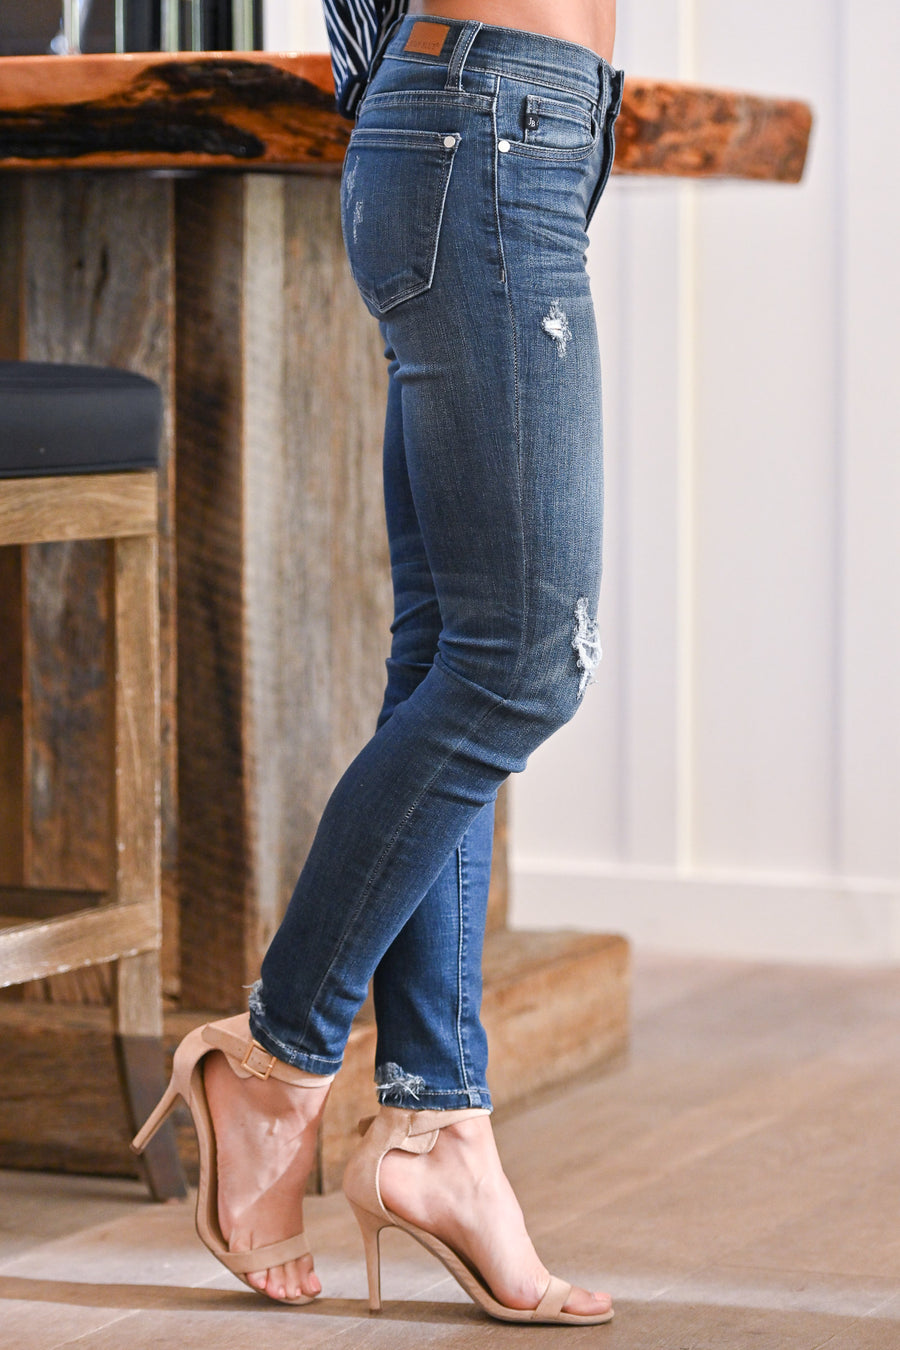 JUDY BLUE Distressed Skinny Jeans - Brooklyn Wash women's jeans, closet candy boutique 2